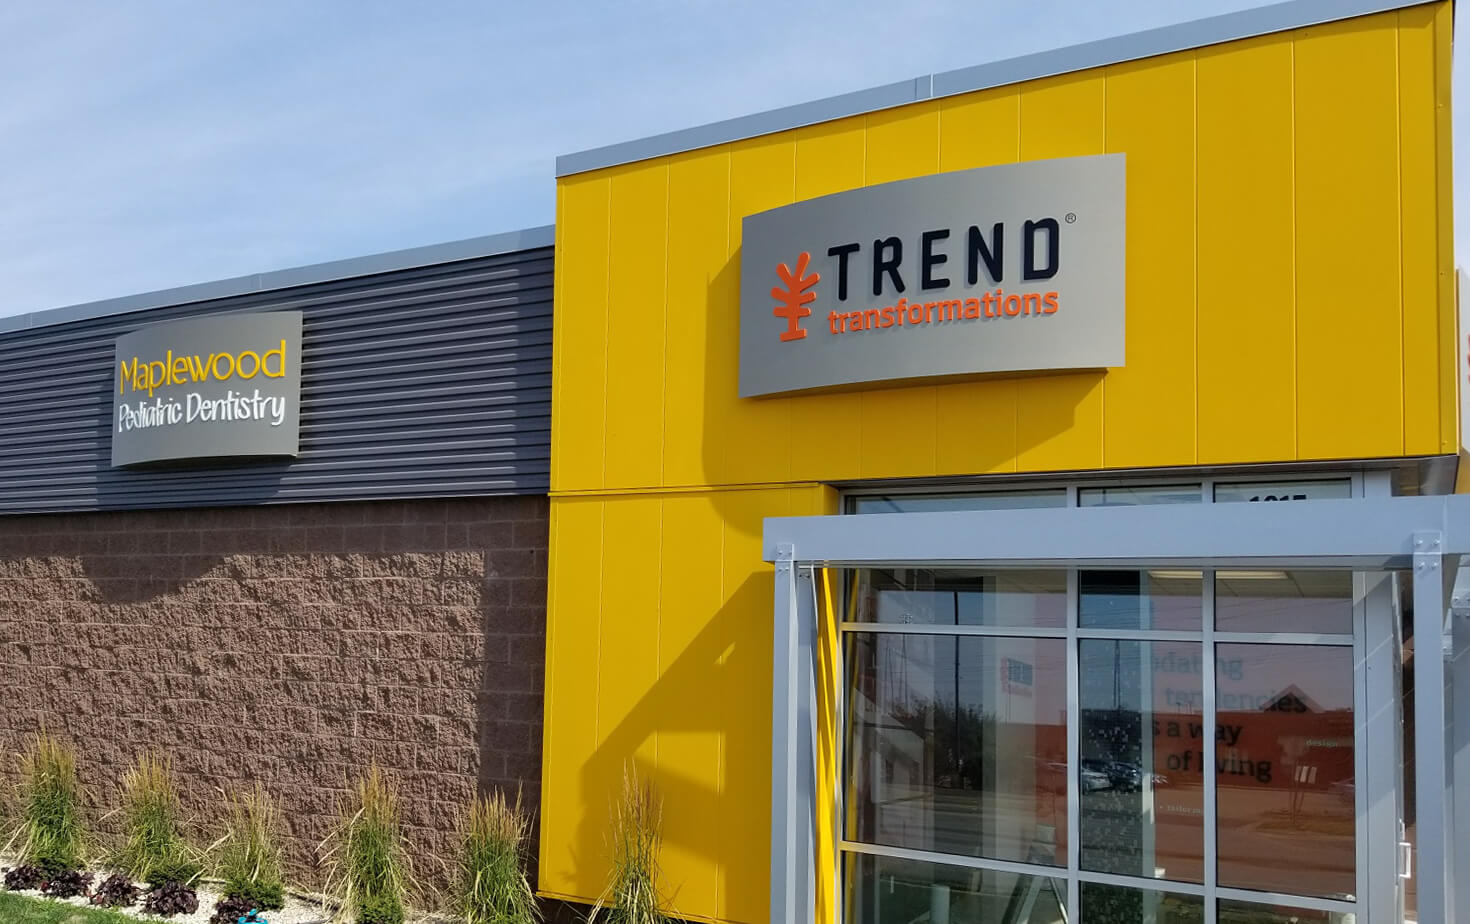 Trend Transformations and Maplewood Pedreatric Dentistry Wall Cabinets on Storefront Maplewood MN